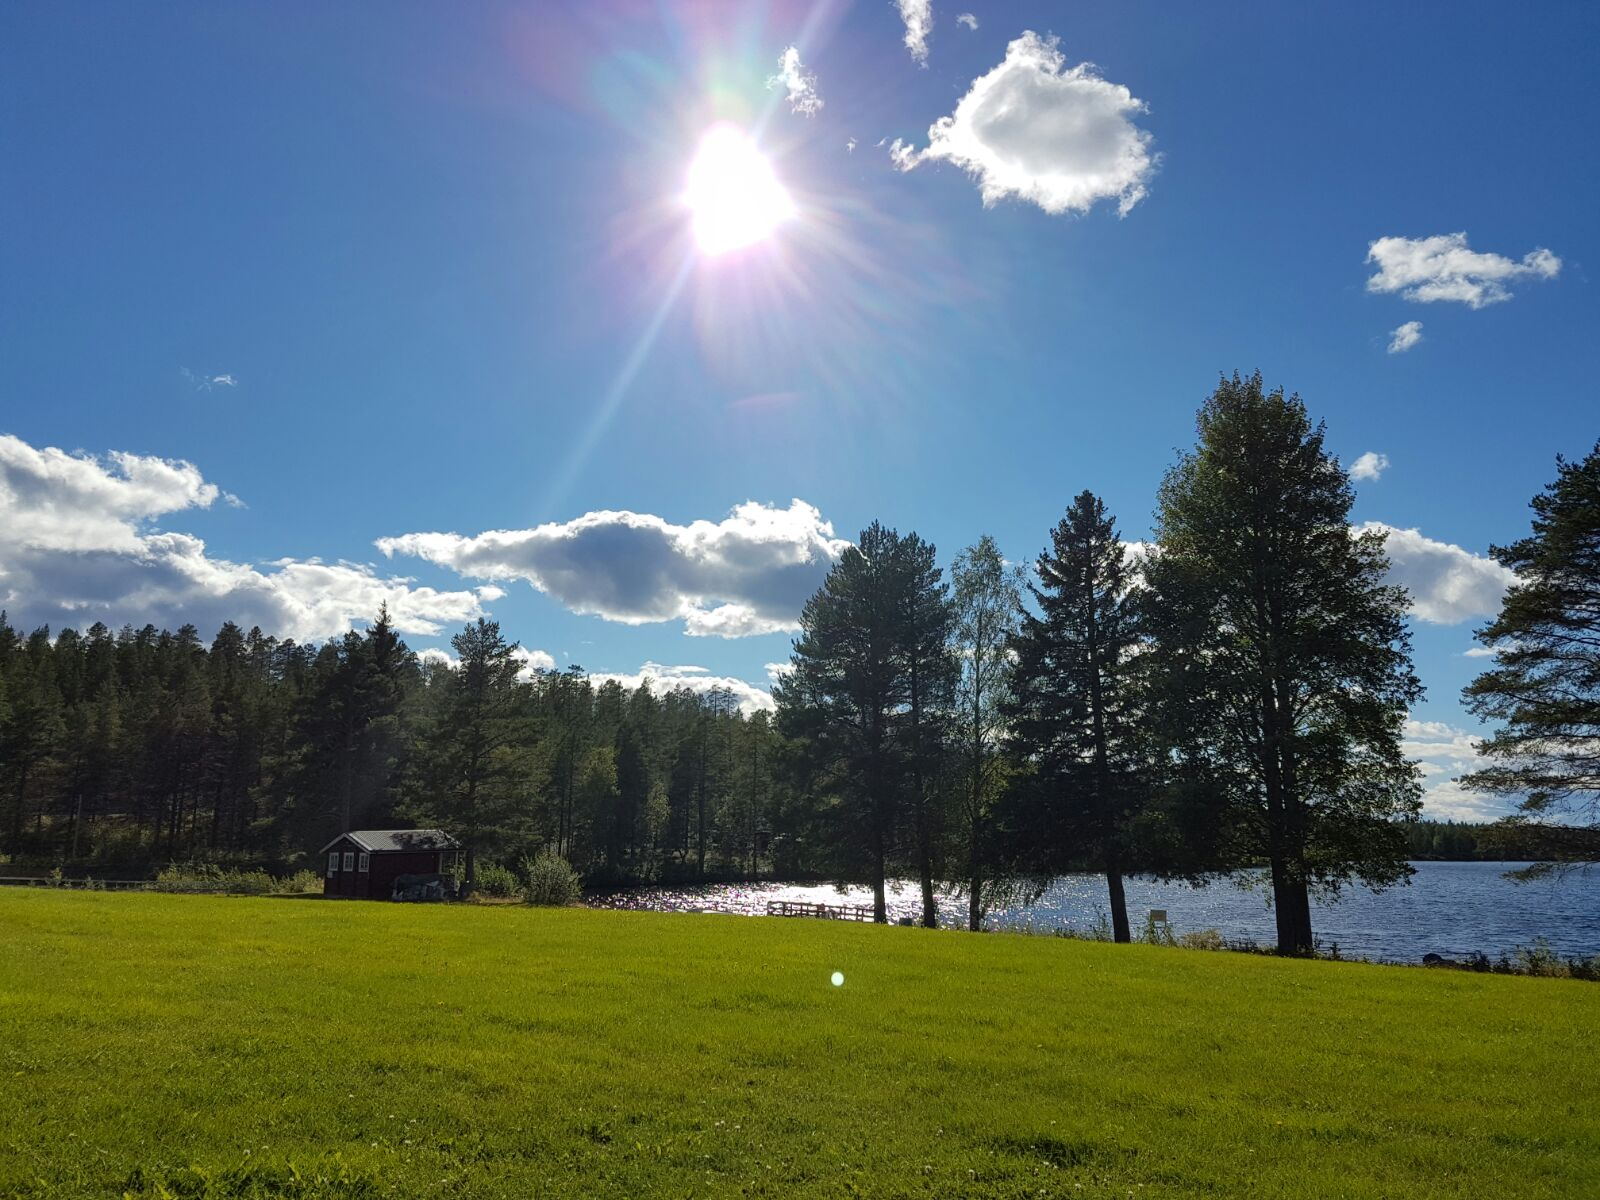 cabin-near-lale-and-trees-in-Sweden-Healing-Room